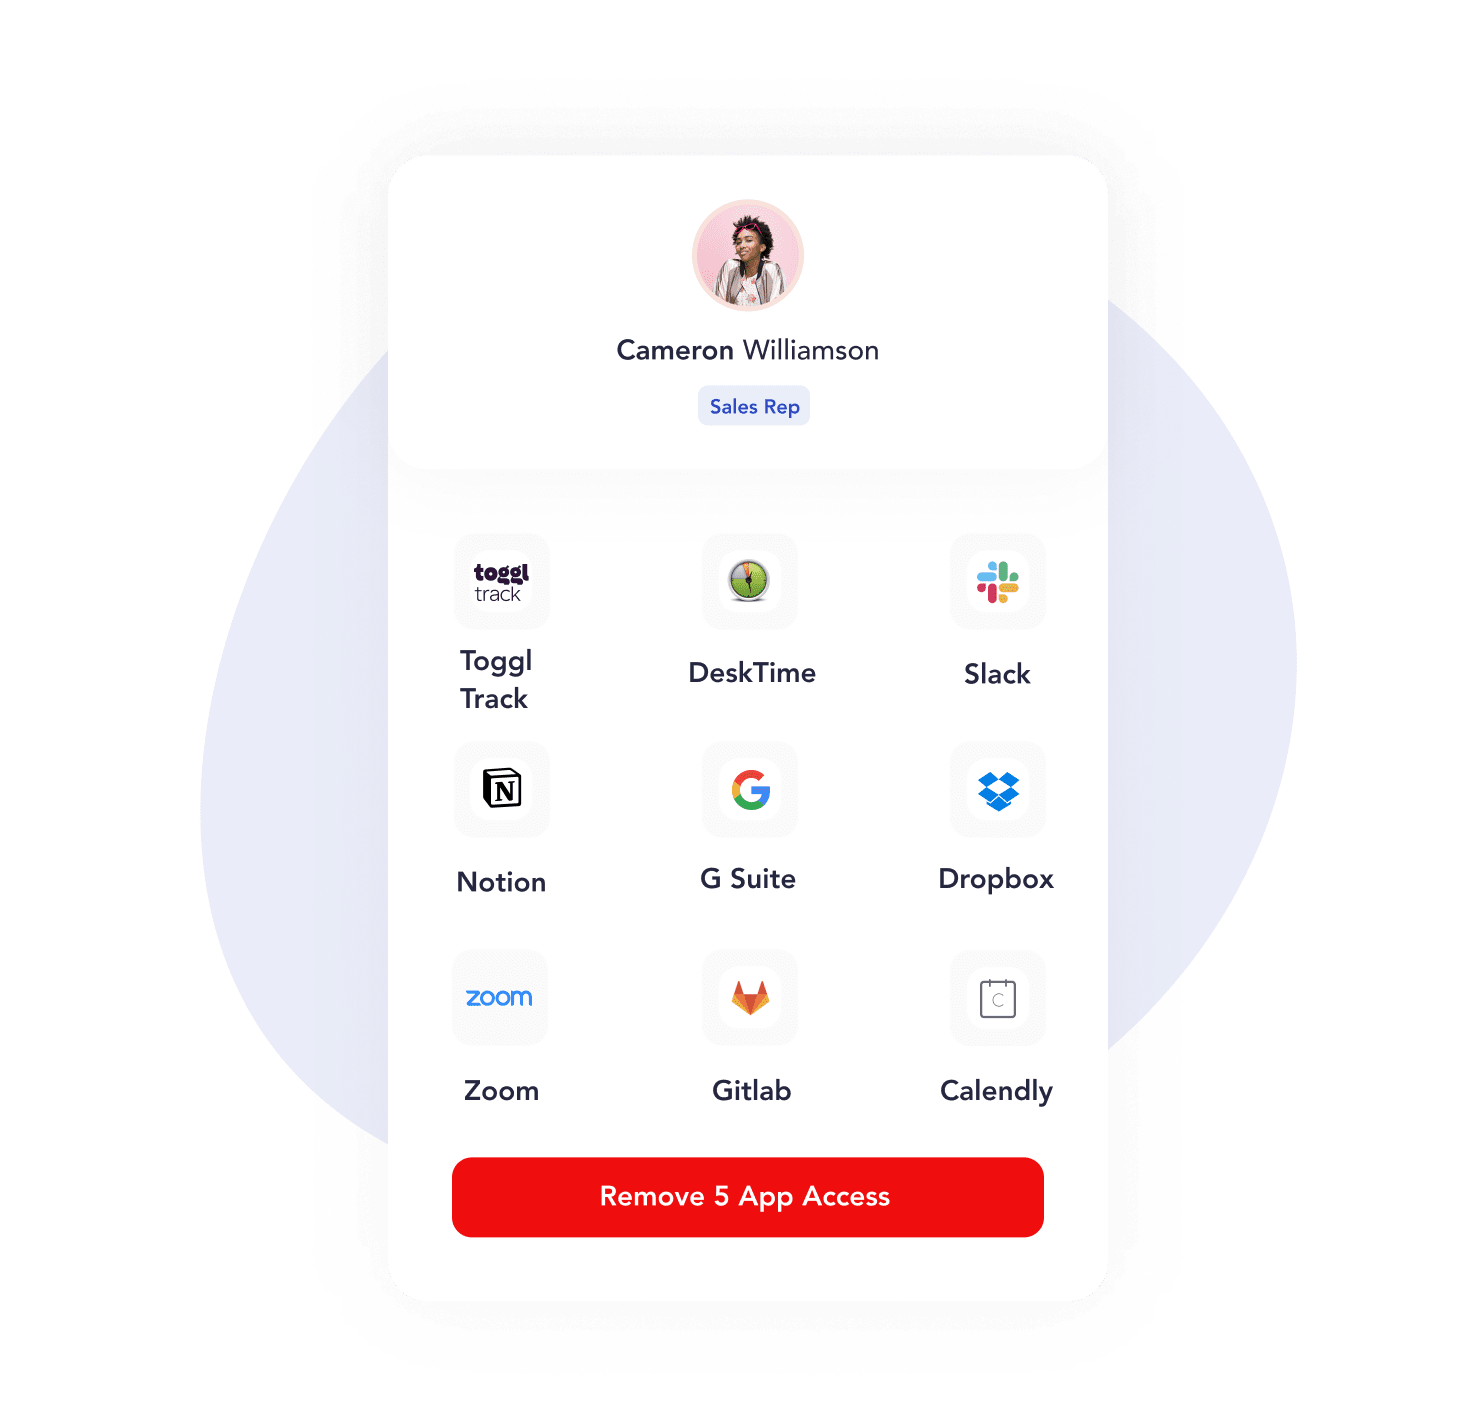 Offboarding Remote Apps